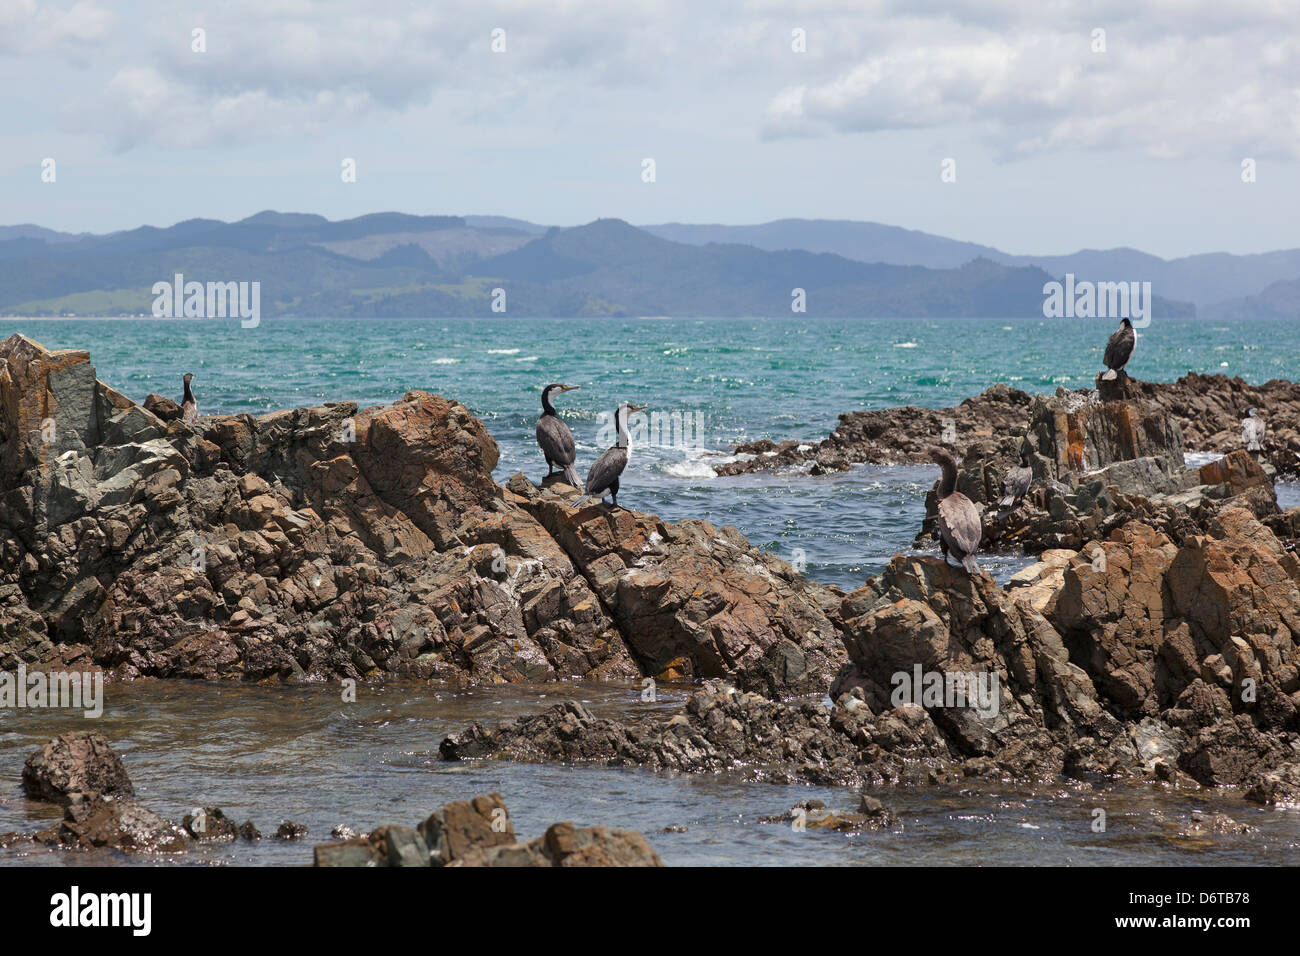 Cormorants at the rocks in Kuaotunu, Coromandel, New Zealand - Stock Image